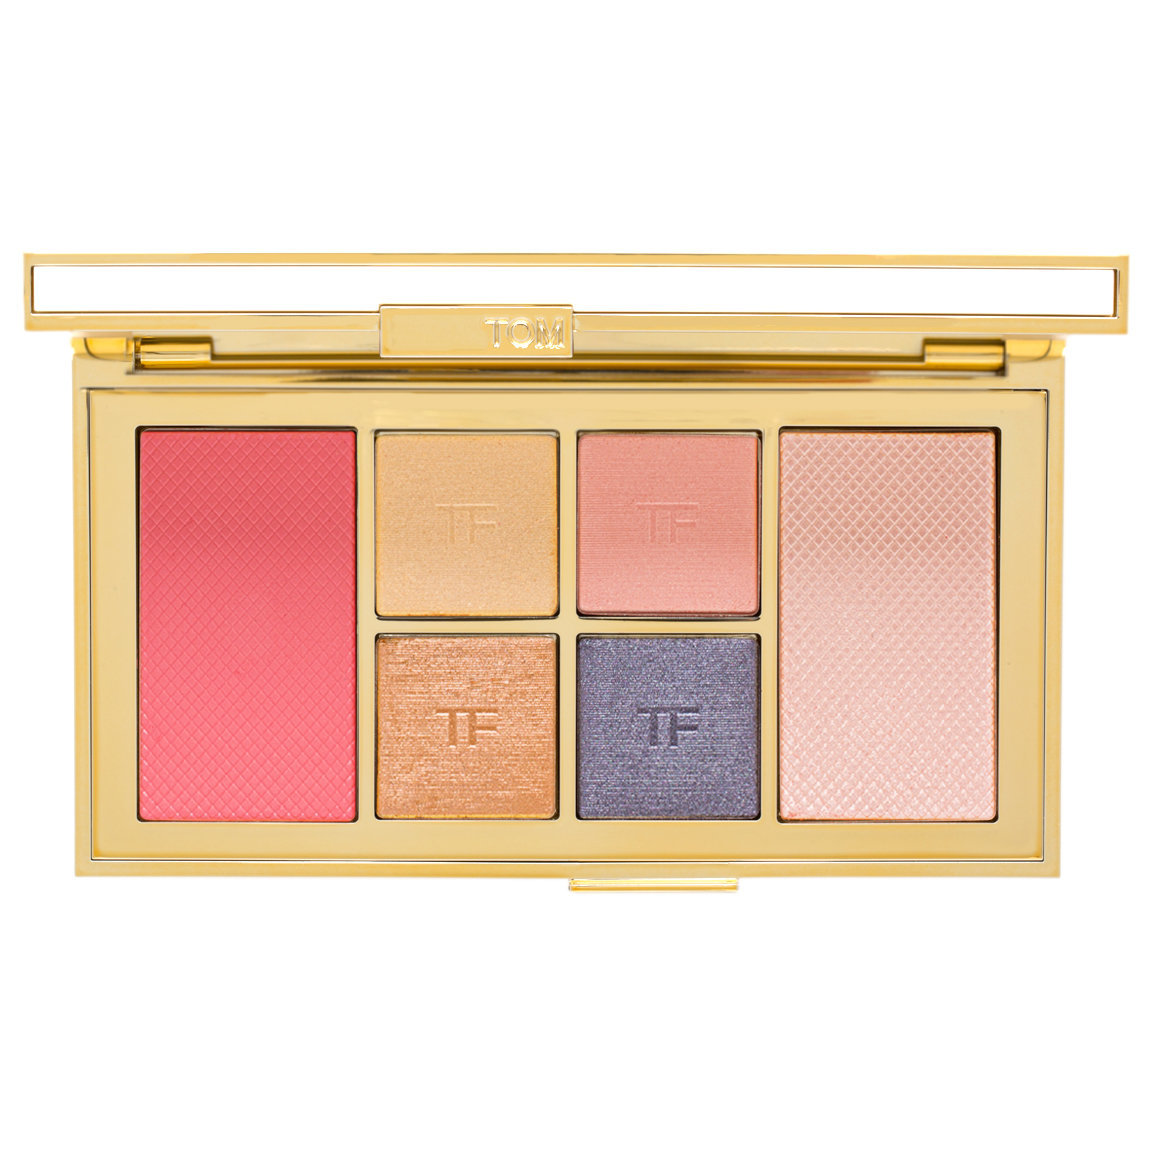 TOM FORD Soleil Eye & Cheek Palette Winter 2018 product smear.